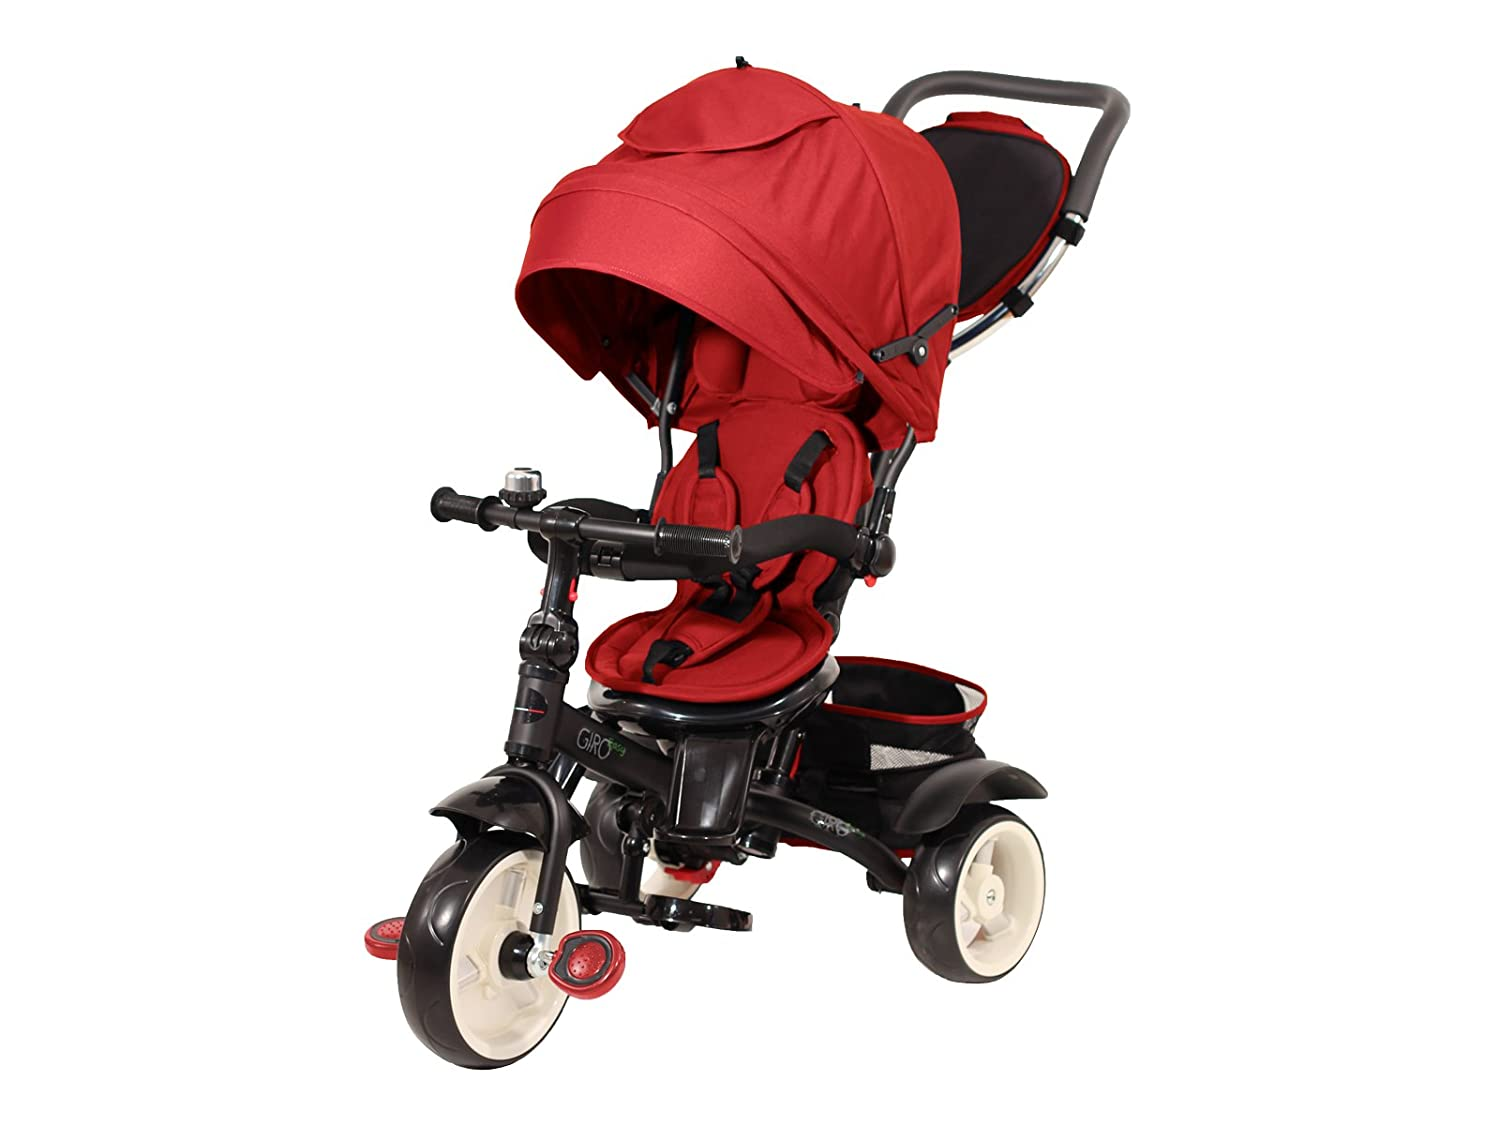 Baby's Clan Triciclo, colore Rosso, Giroeasy.05